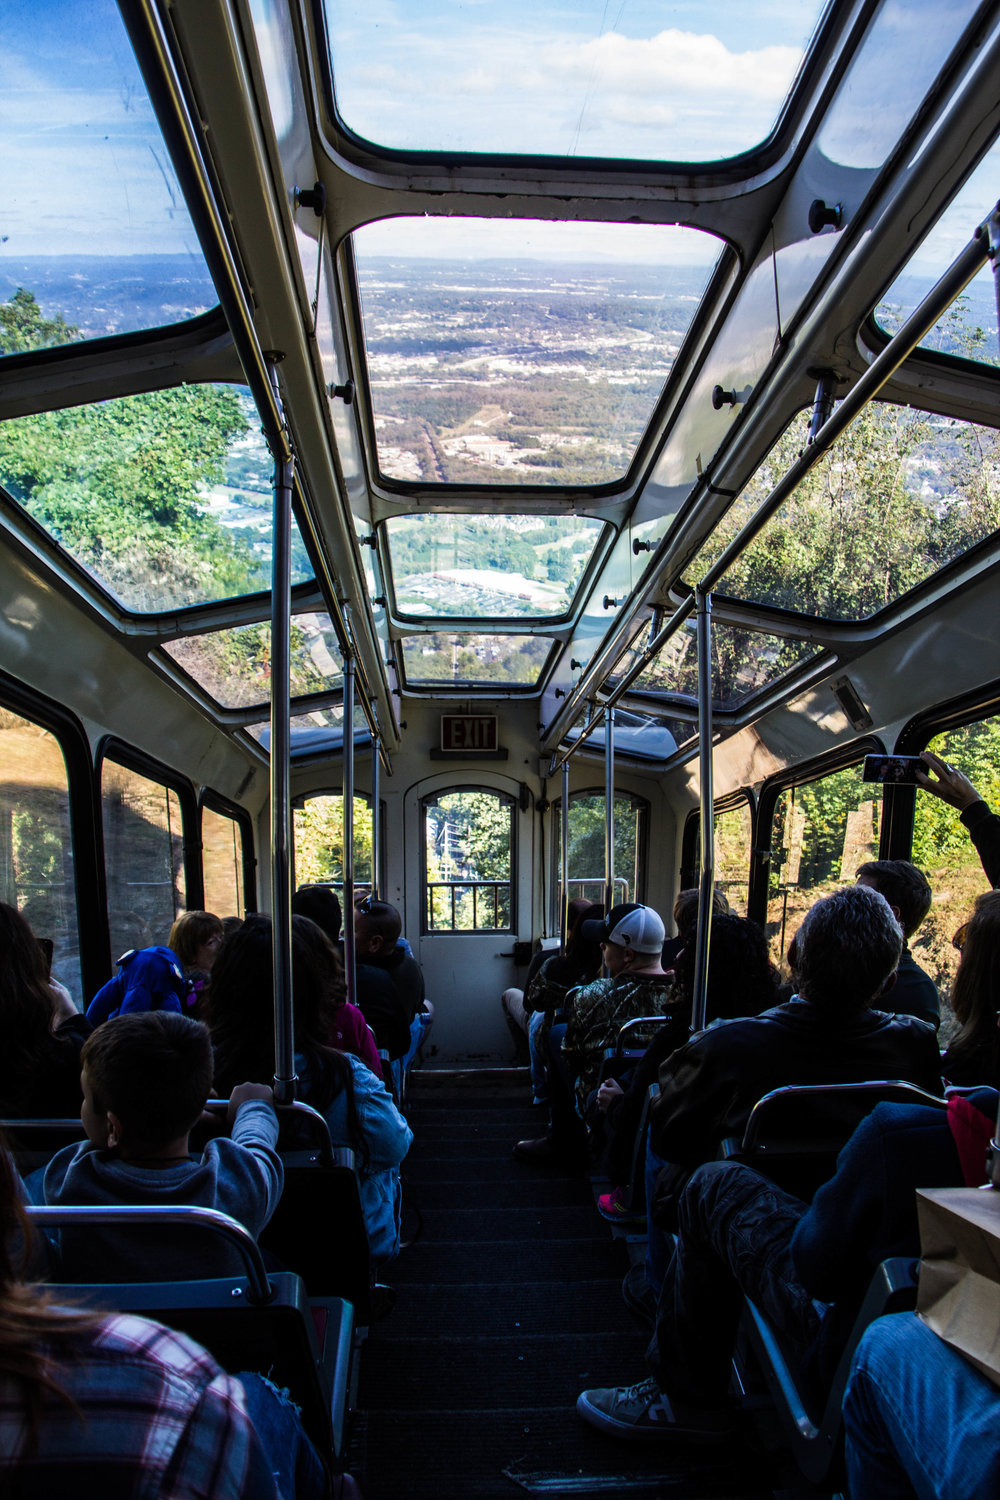 chattanooga-incline-railway-14.jpg